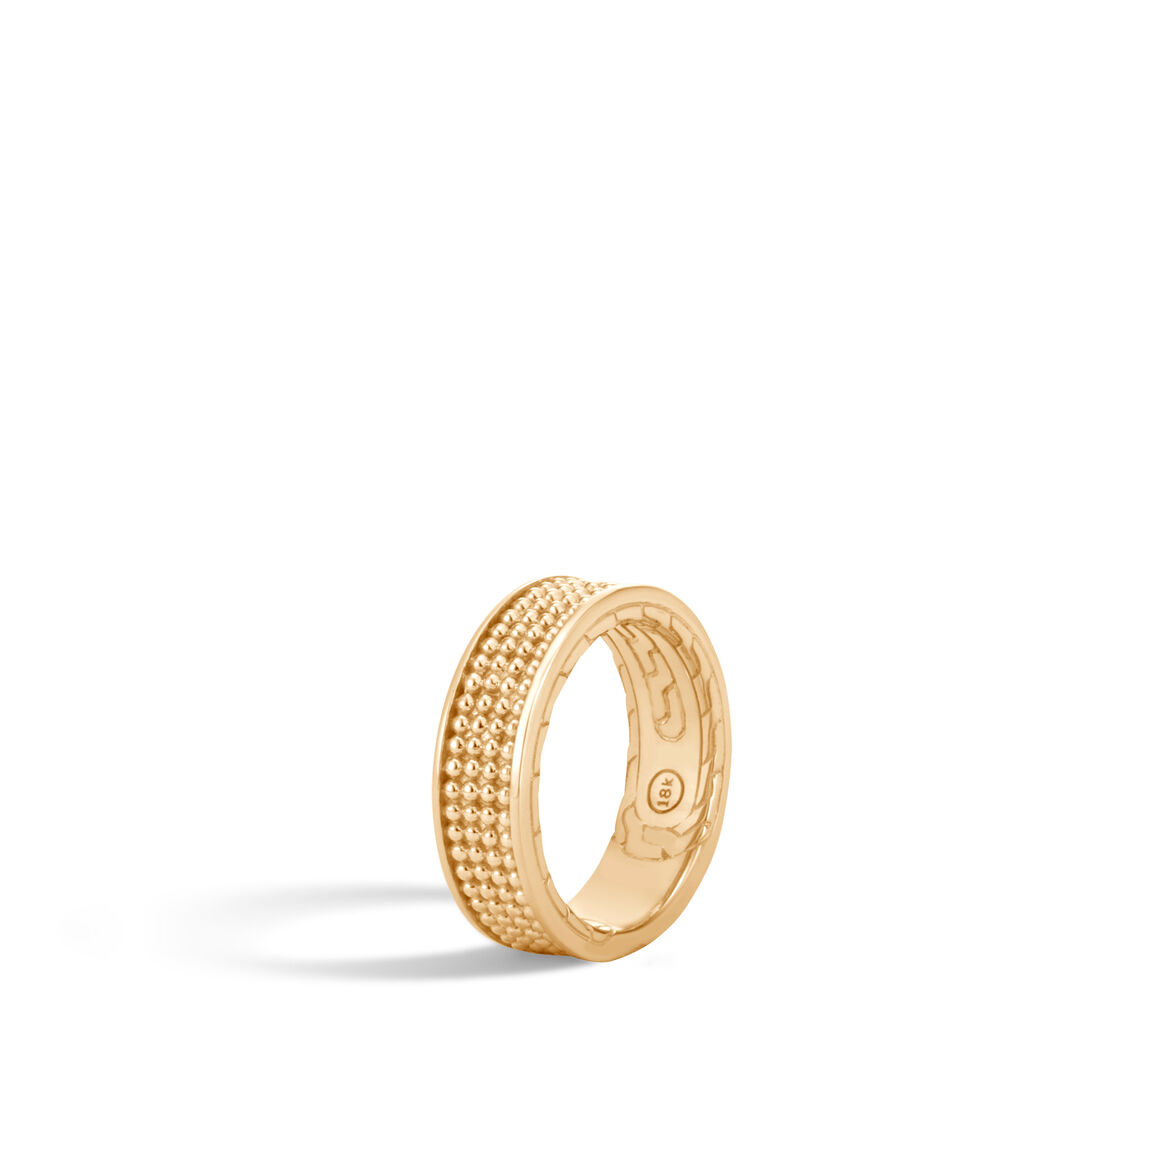 Chain Jawan 7.5MM Band Ring in 18K Gold